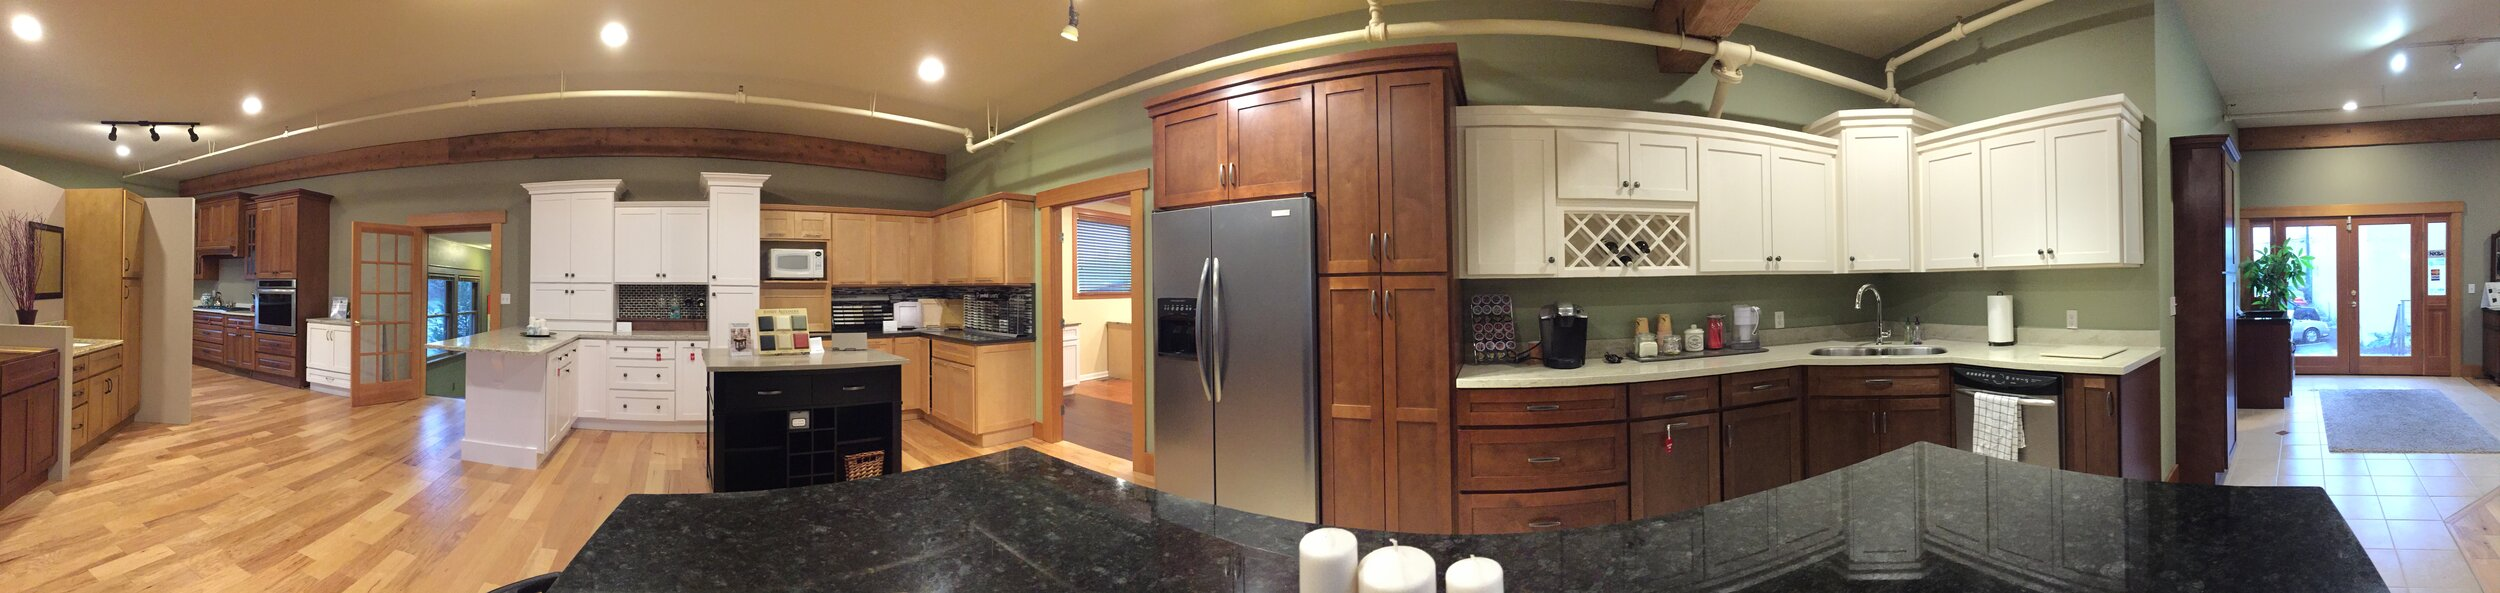 Tacoma Cabinet Countertop Showroom Founder S Choice Kitchen Cabinets Countertops